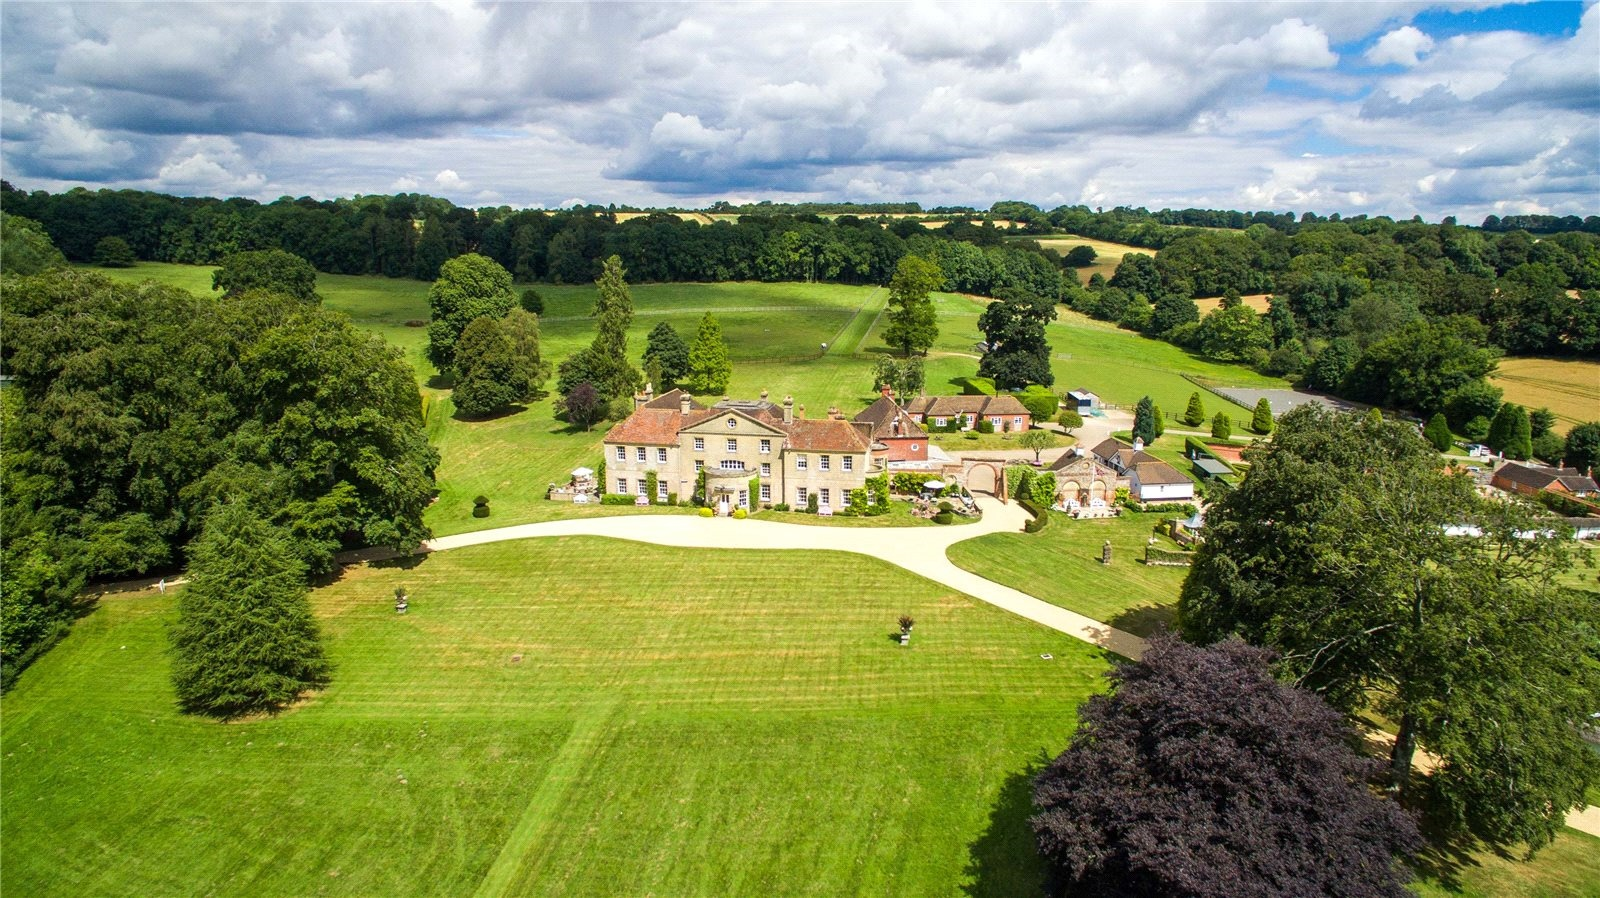 Standen House, a 16th-century manor house in the Hampshire countryside, is surrounded by more than 40 acres of glorious private parkland.